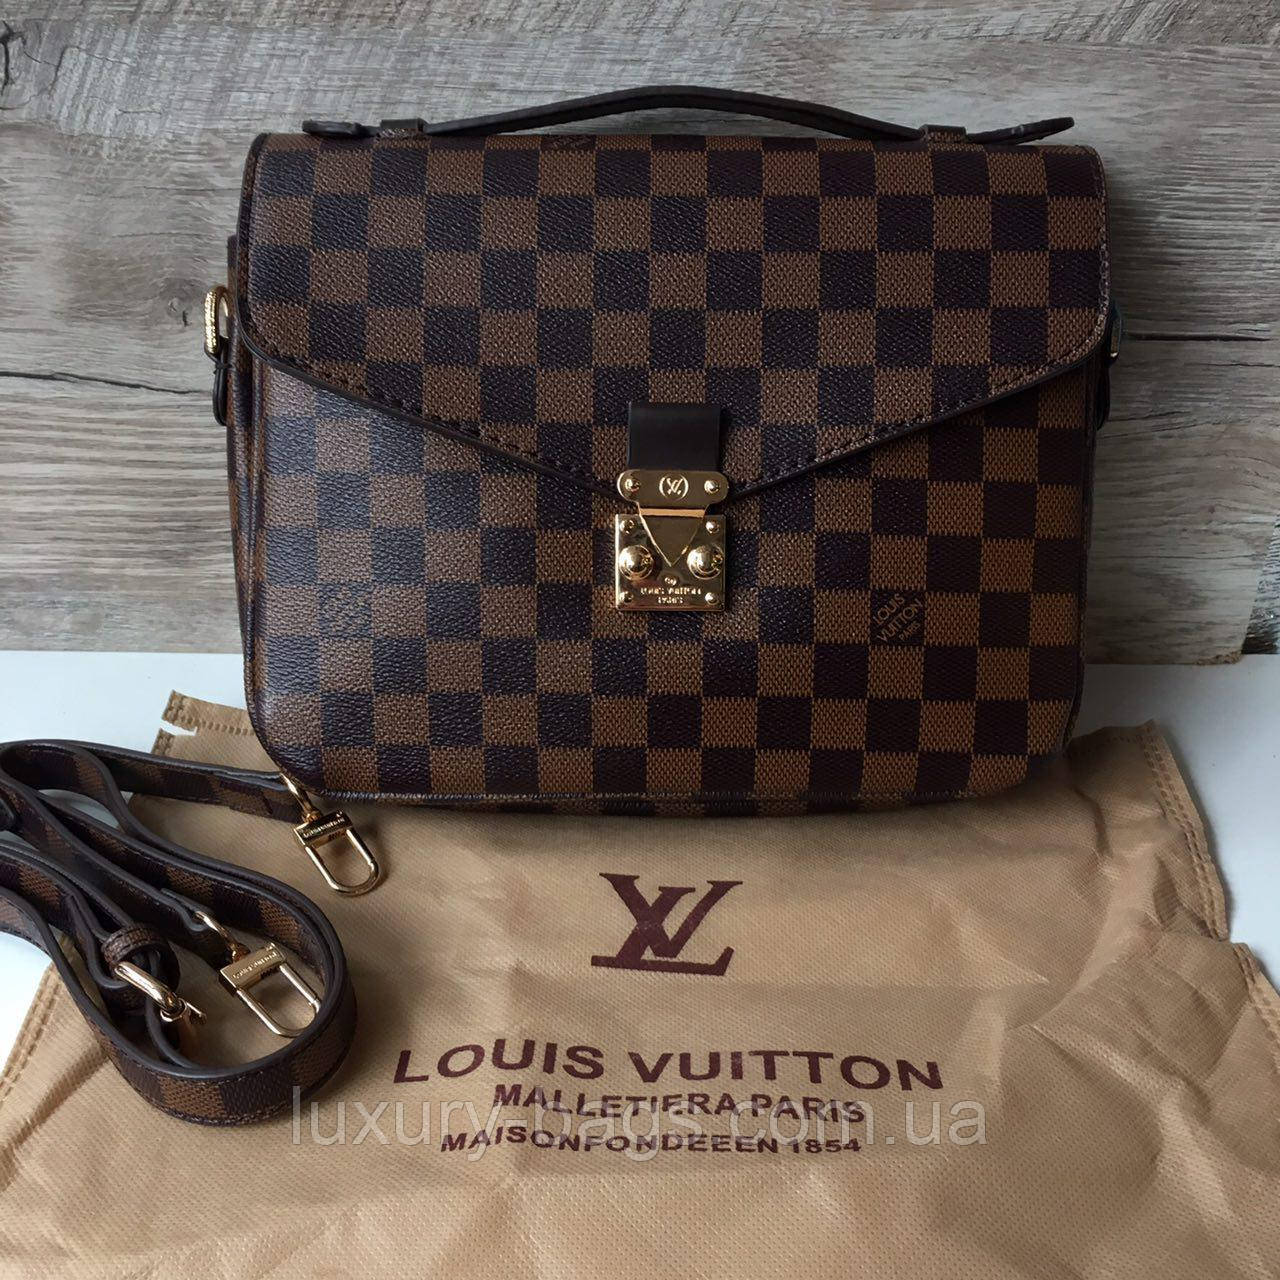 7b314e19c642 Женская сумка Louis Vuitton Pochette Metis Луи Виттон монограм -  BaGsInTrend в Одессе